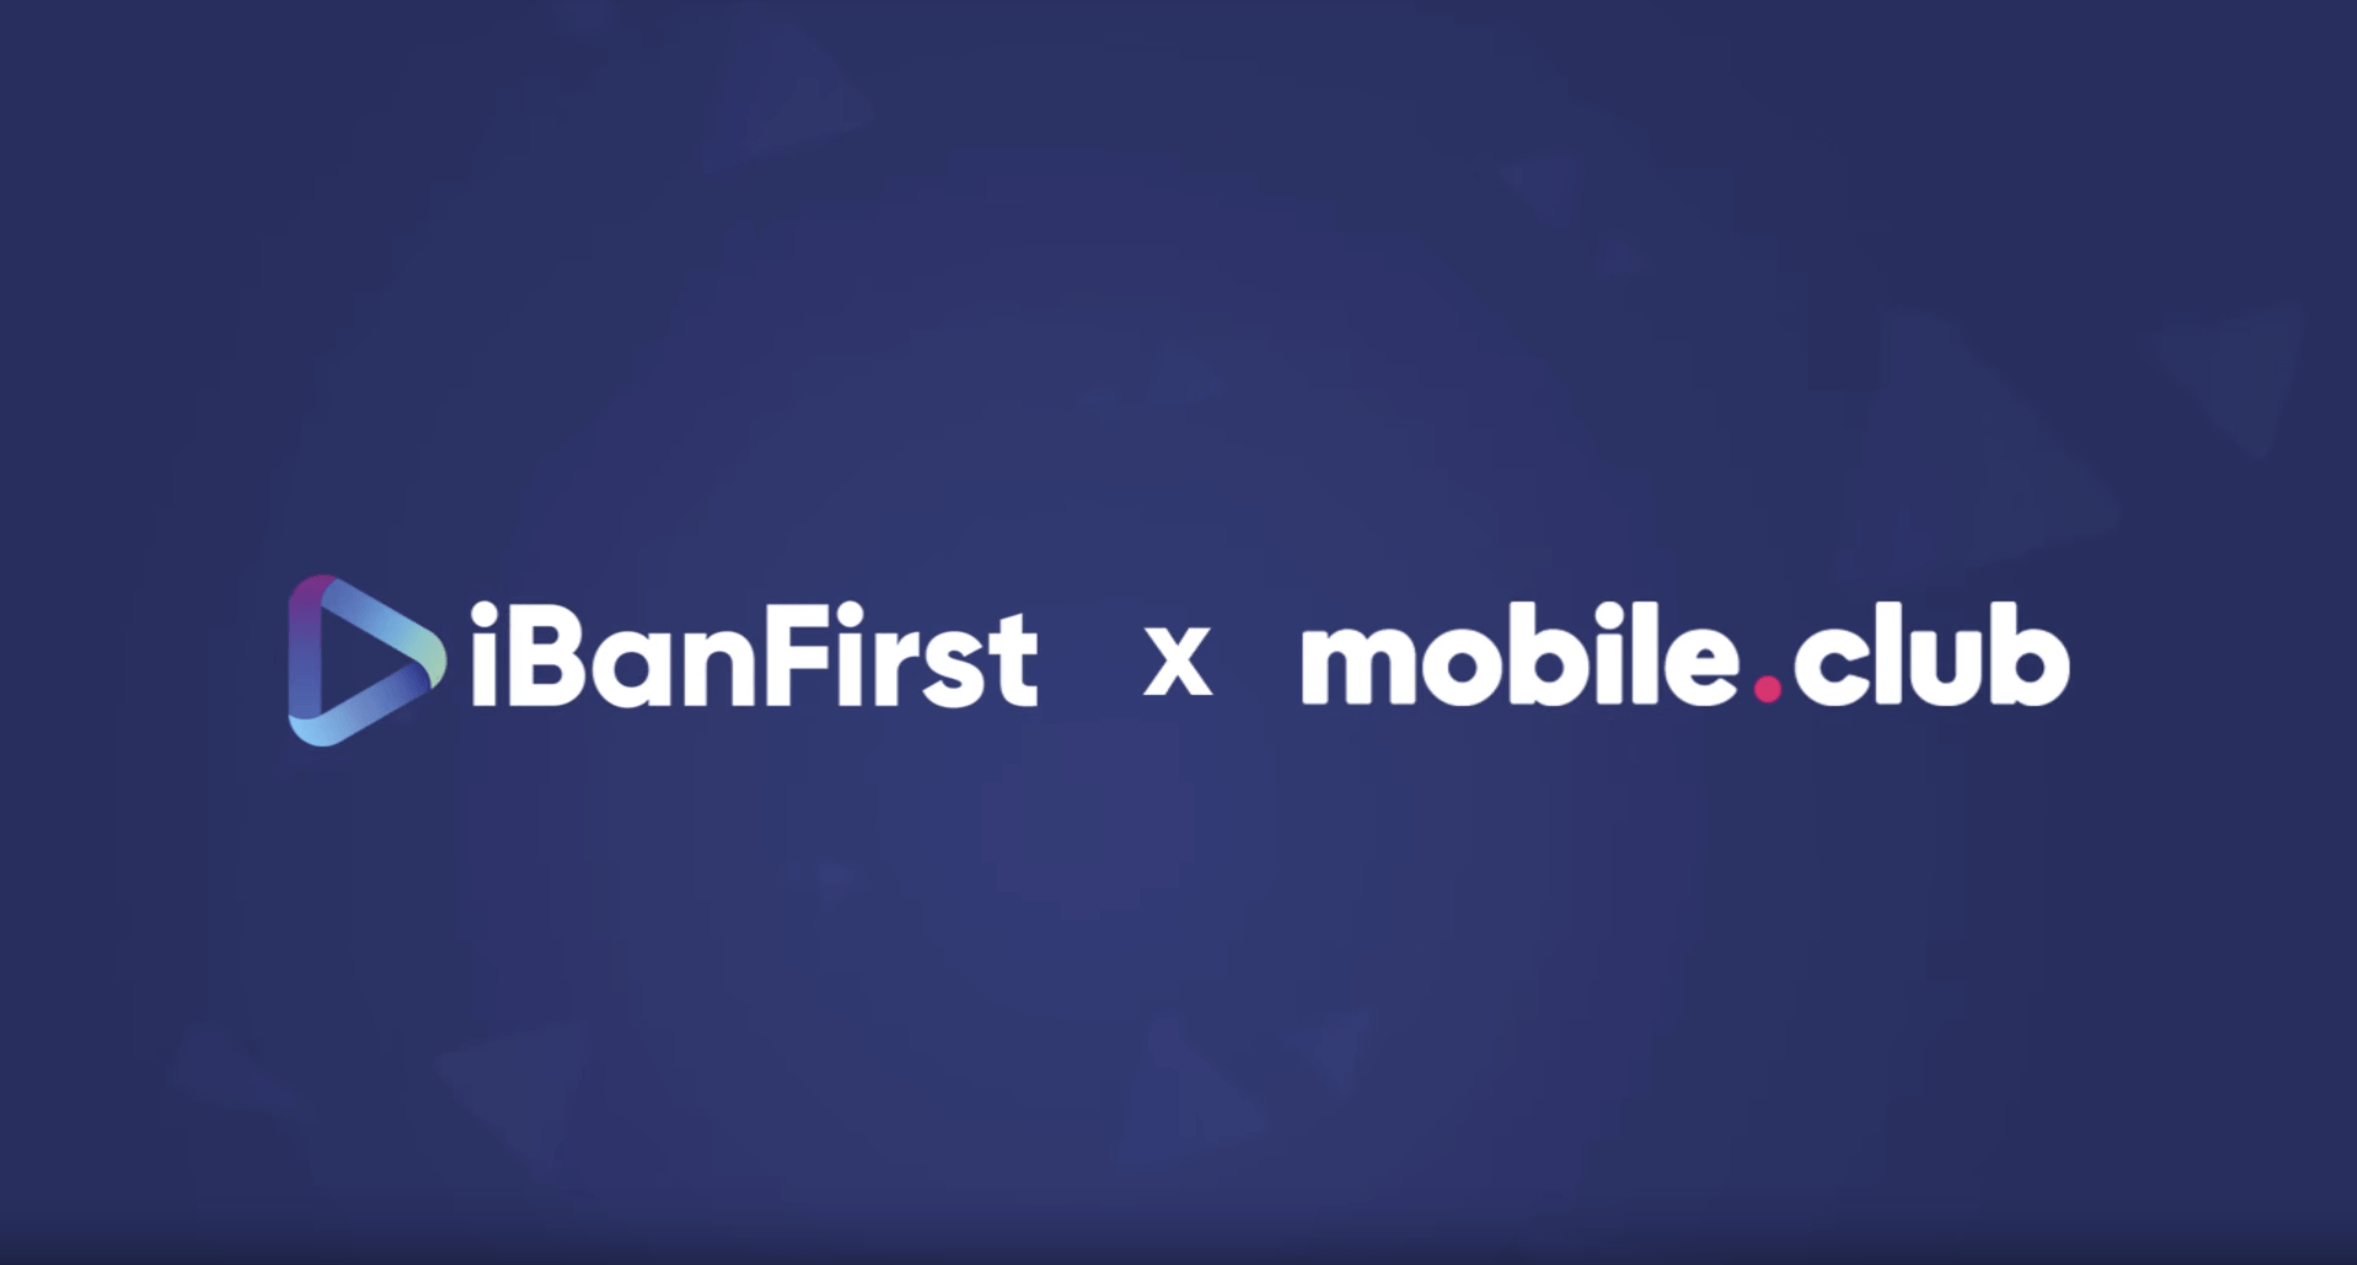 iBanFirst-mobile-club